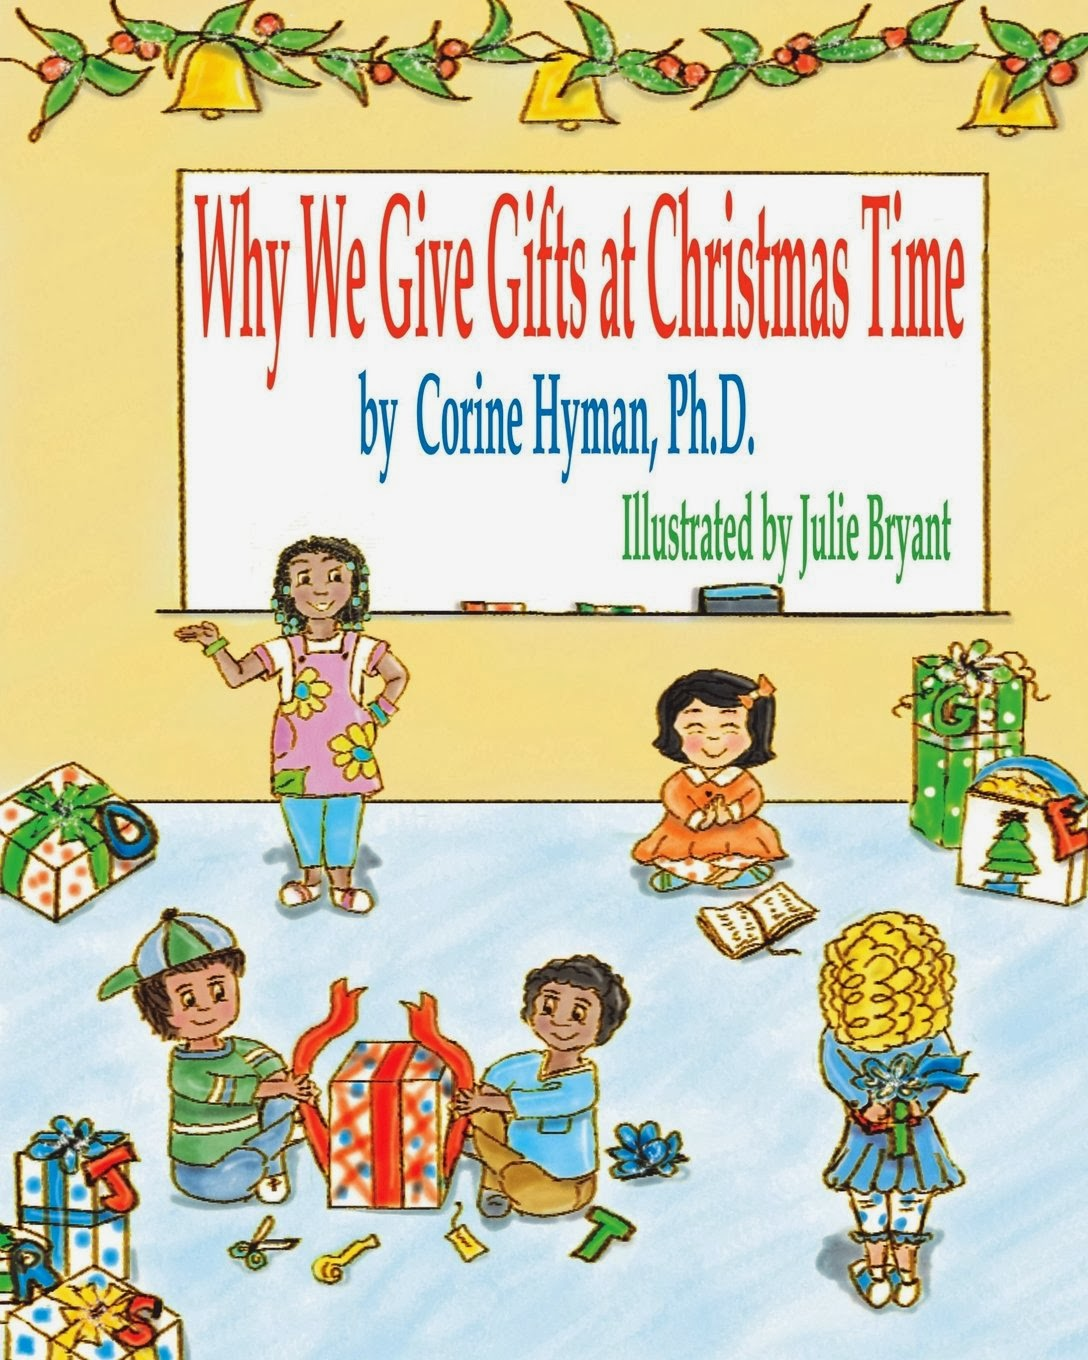 Christian Children\'s Book Review: Why We Give Gifts at Christmas Time